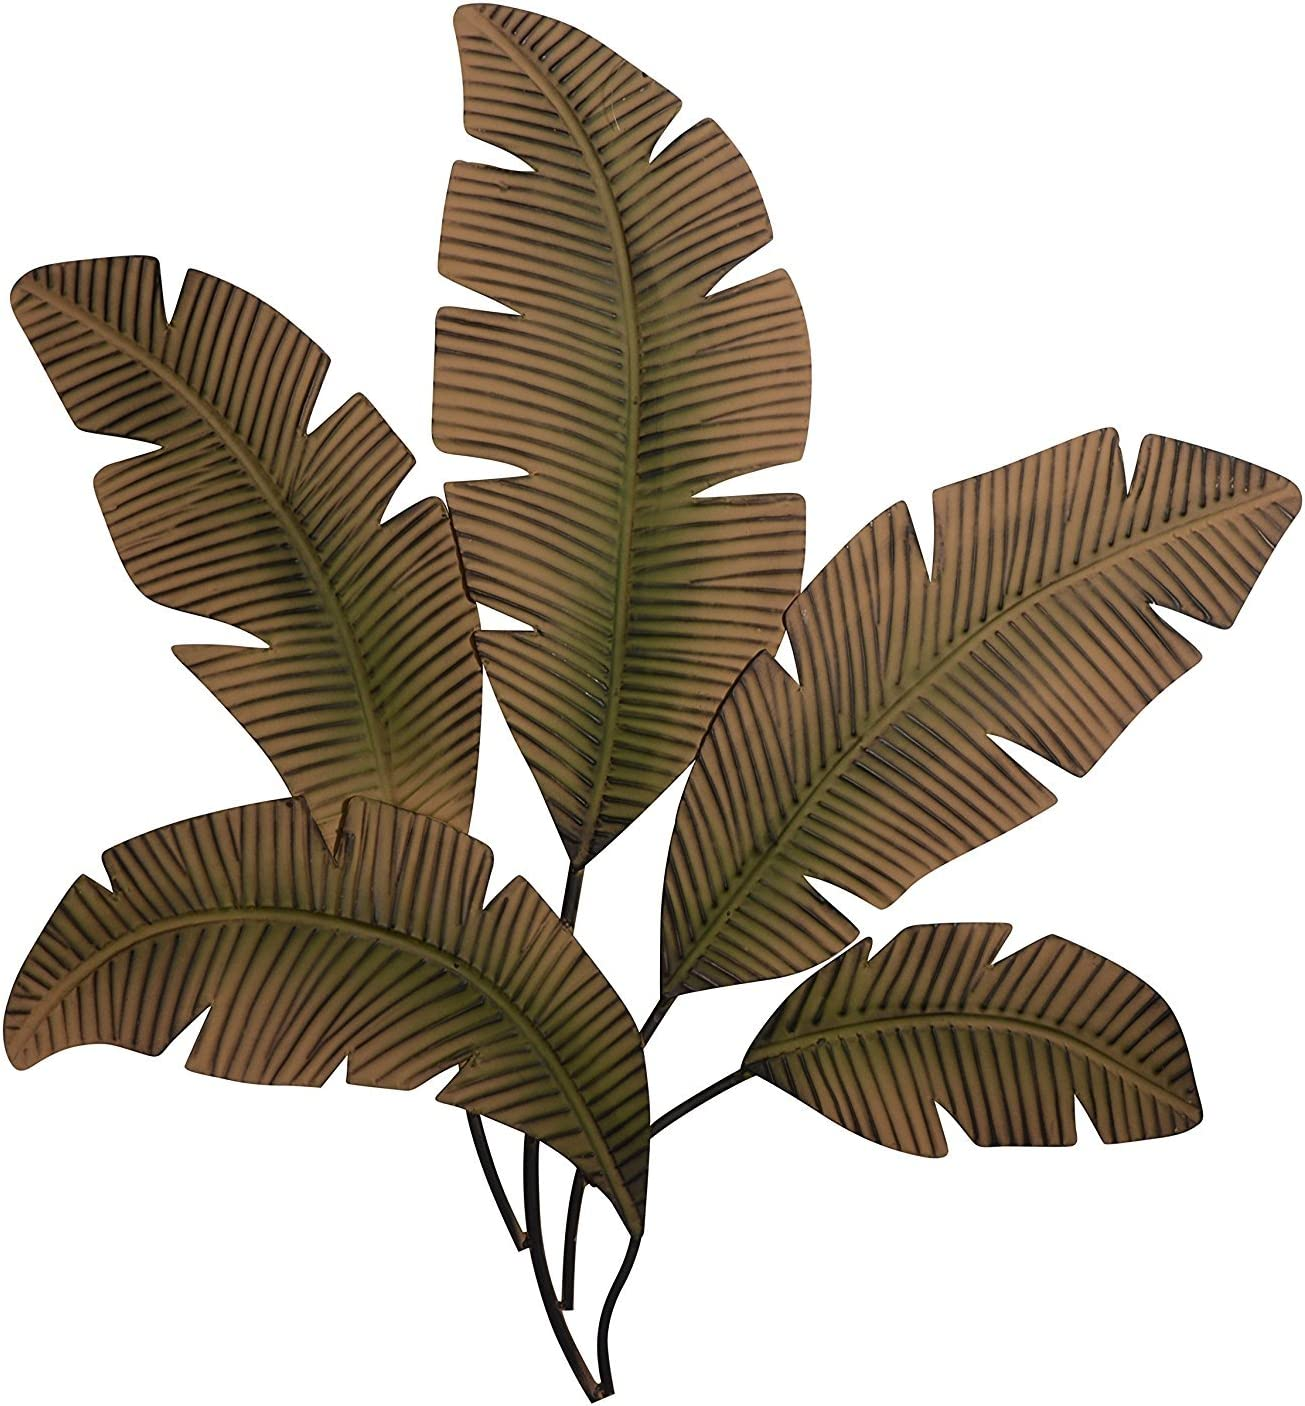 Ten Waterloo 65531-97920 Palm Leaf Metal Wall Art Sculpture 35 Inches Wide x 34 Inches High, Matte Finish